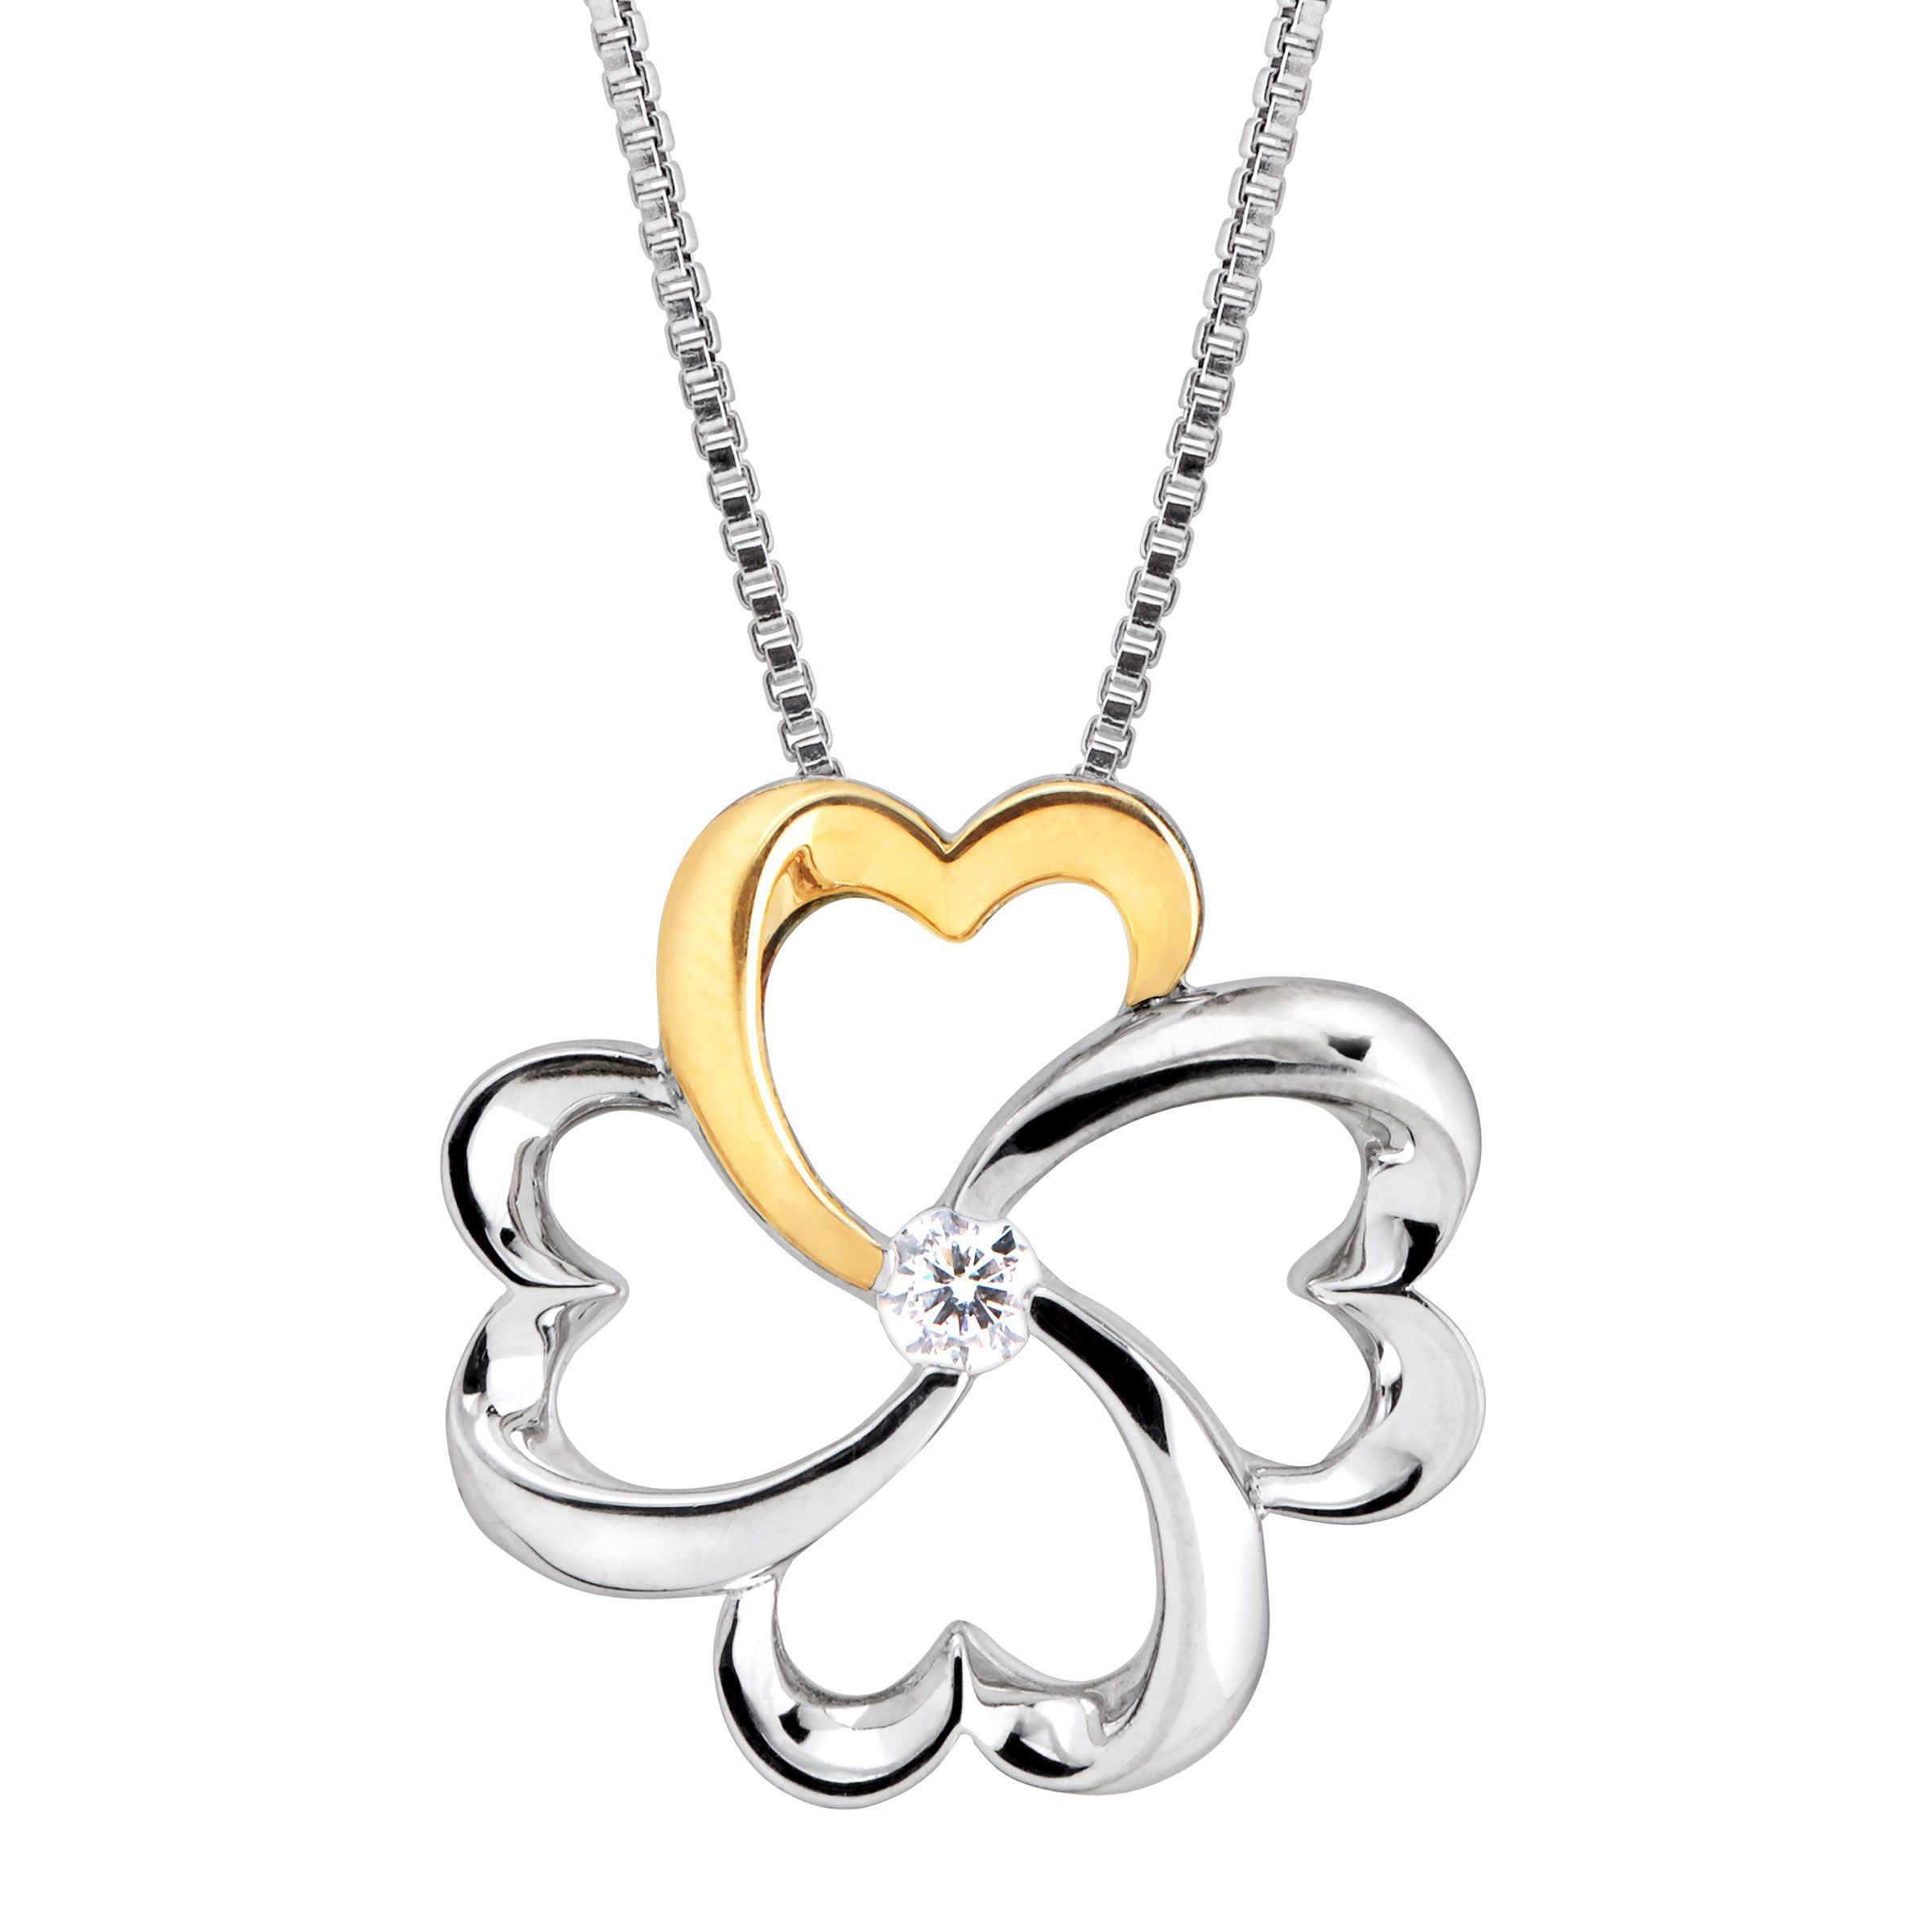 pendant lucky clover necklace layer layered made products leaf dainty image four to minimal